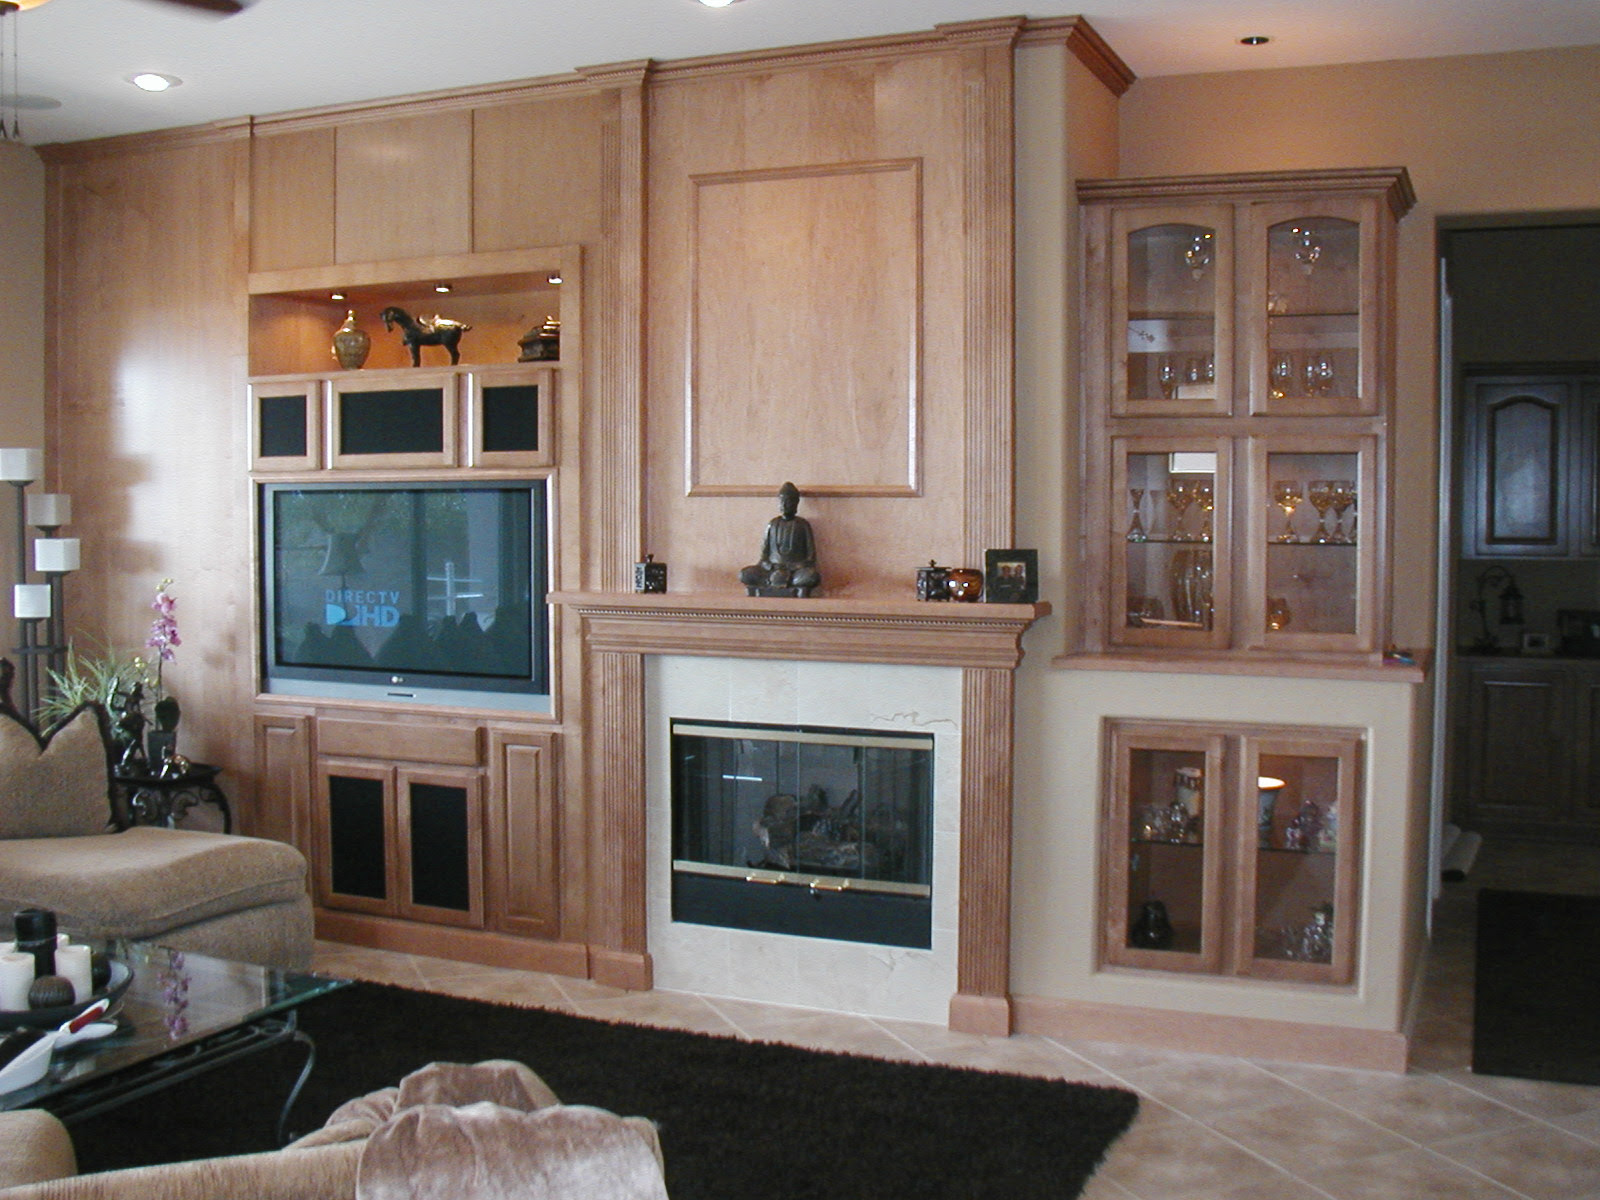 Cabinet Refacing - looking for firsthand experiences ...